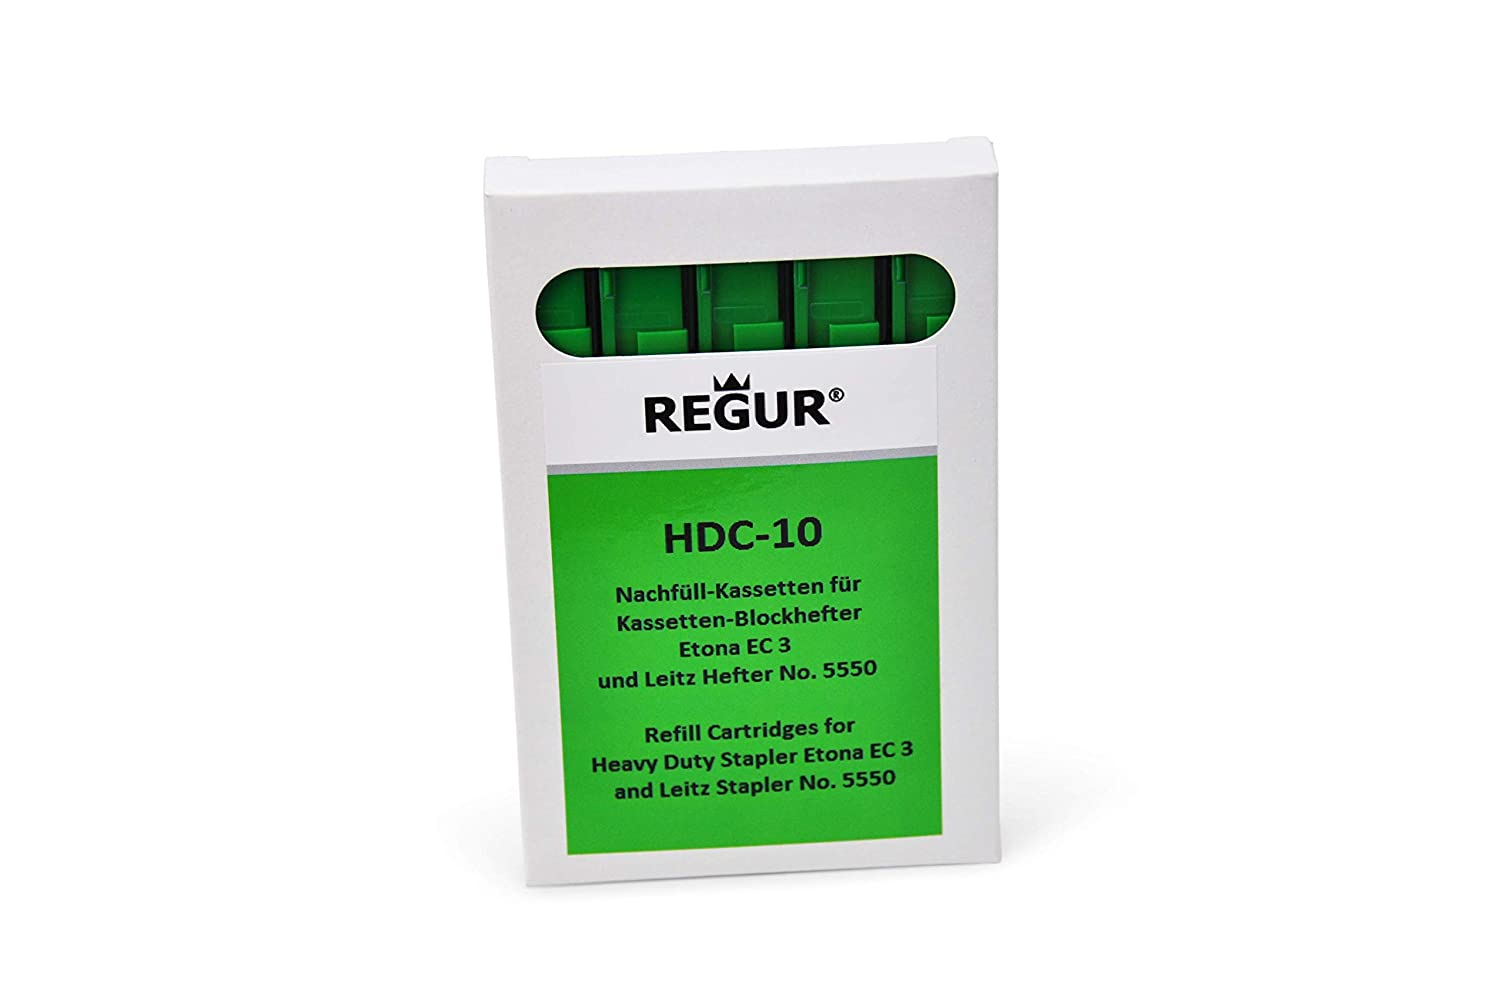 REGUR HDC 10 Green Staple Cassette Refills (40-55 Sheets ) for Etona EC3 Dr. Gold & Co.